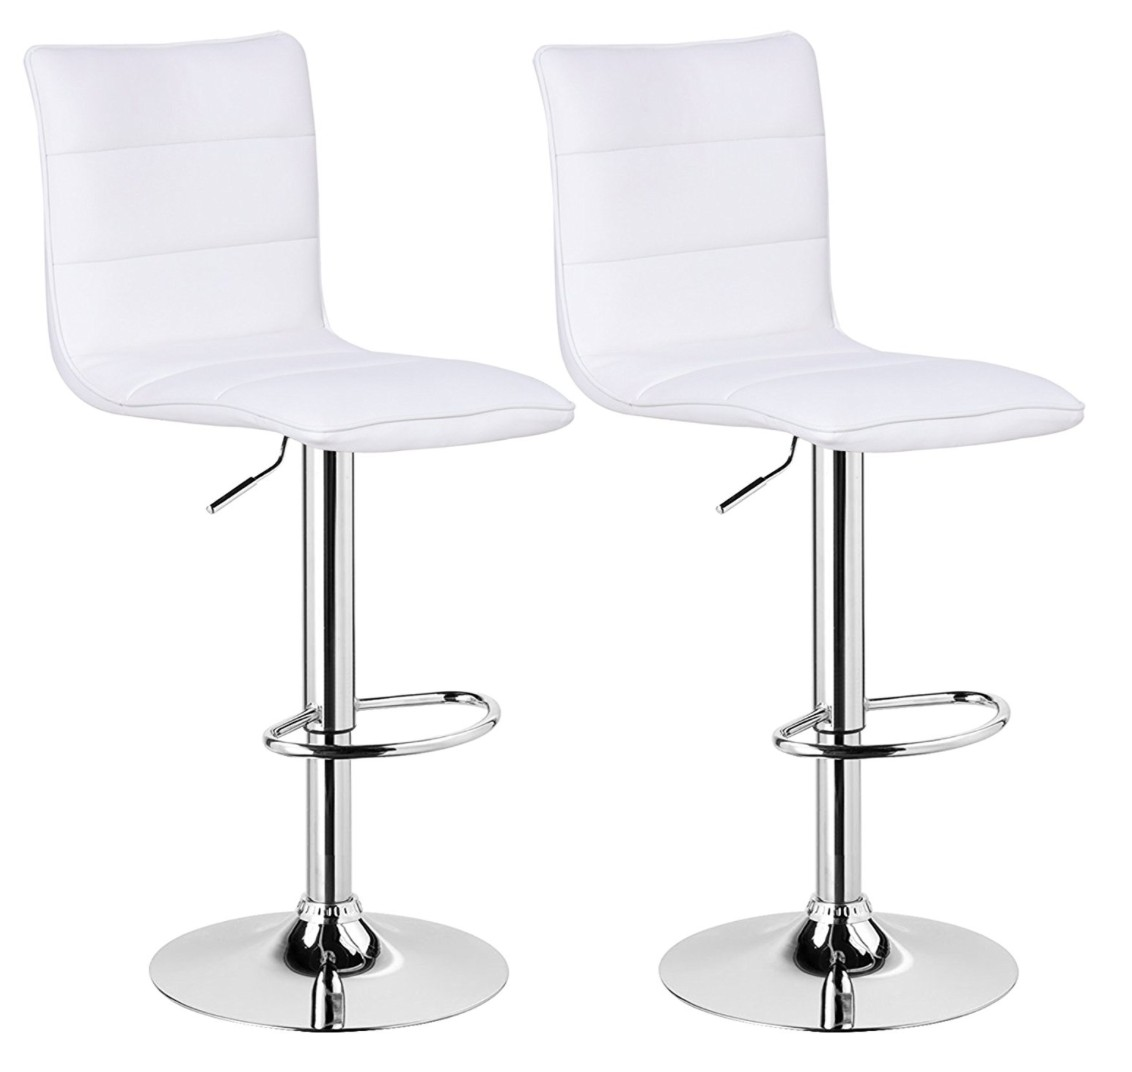 tabouret haut dossier simili blanc prezide lot de 2. Black Bedroom Furniture Sets. Home Design Ideas